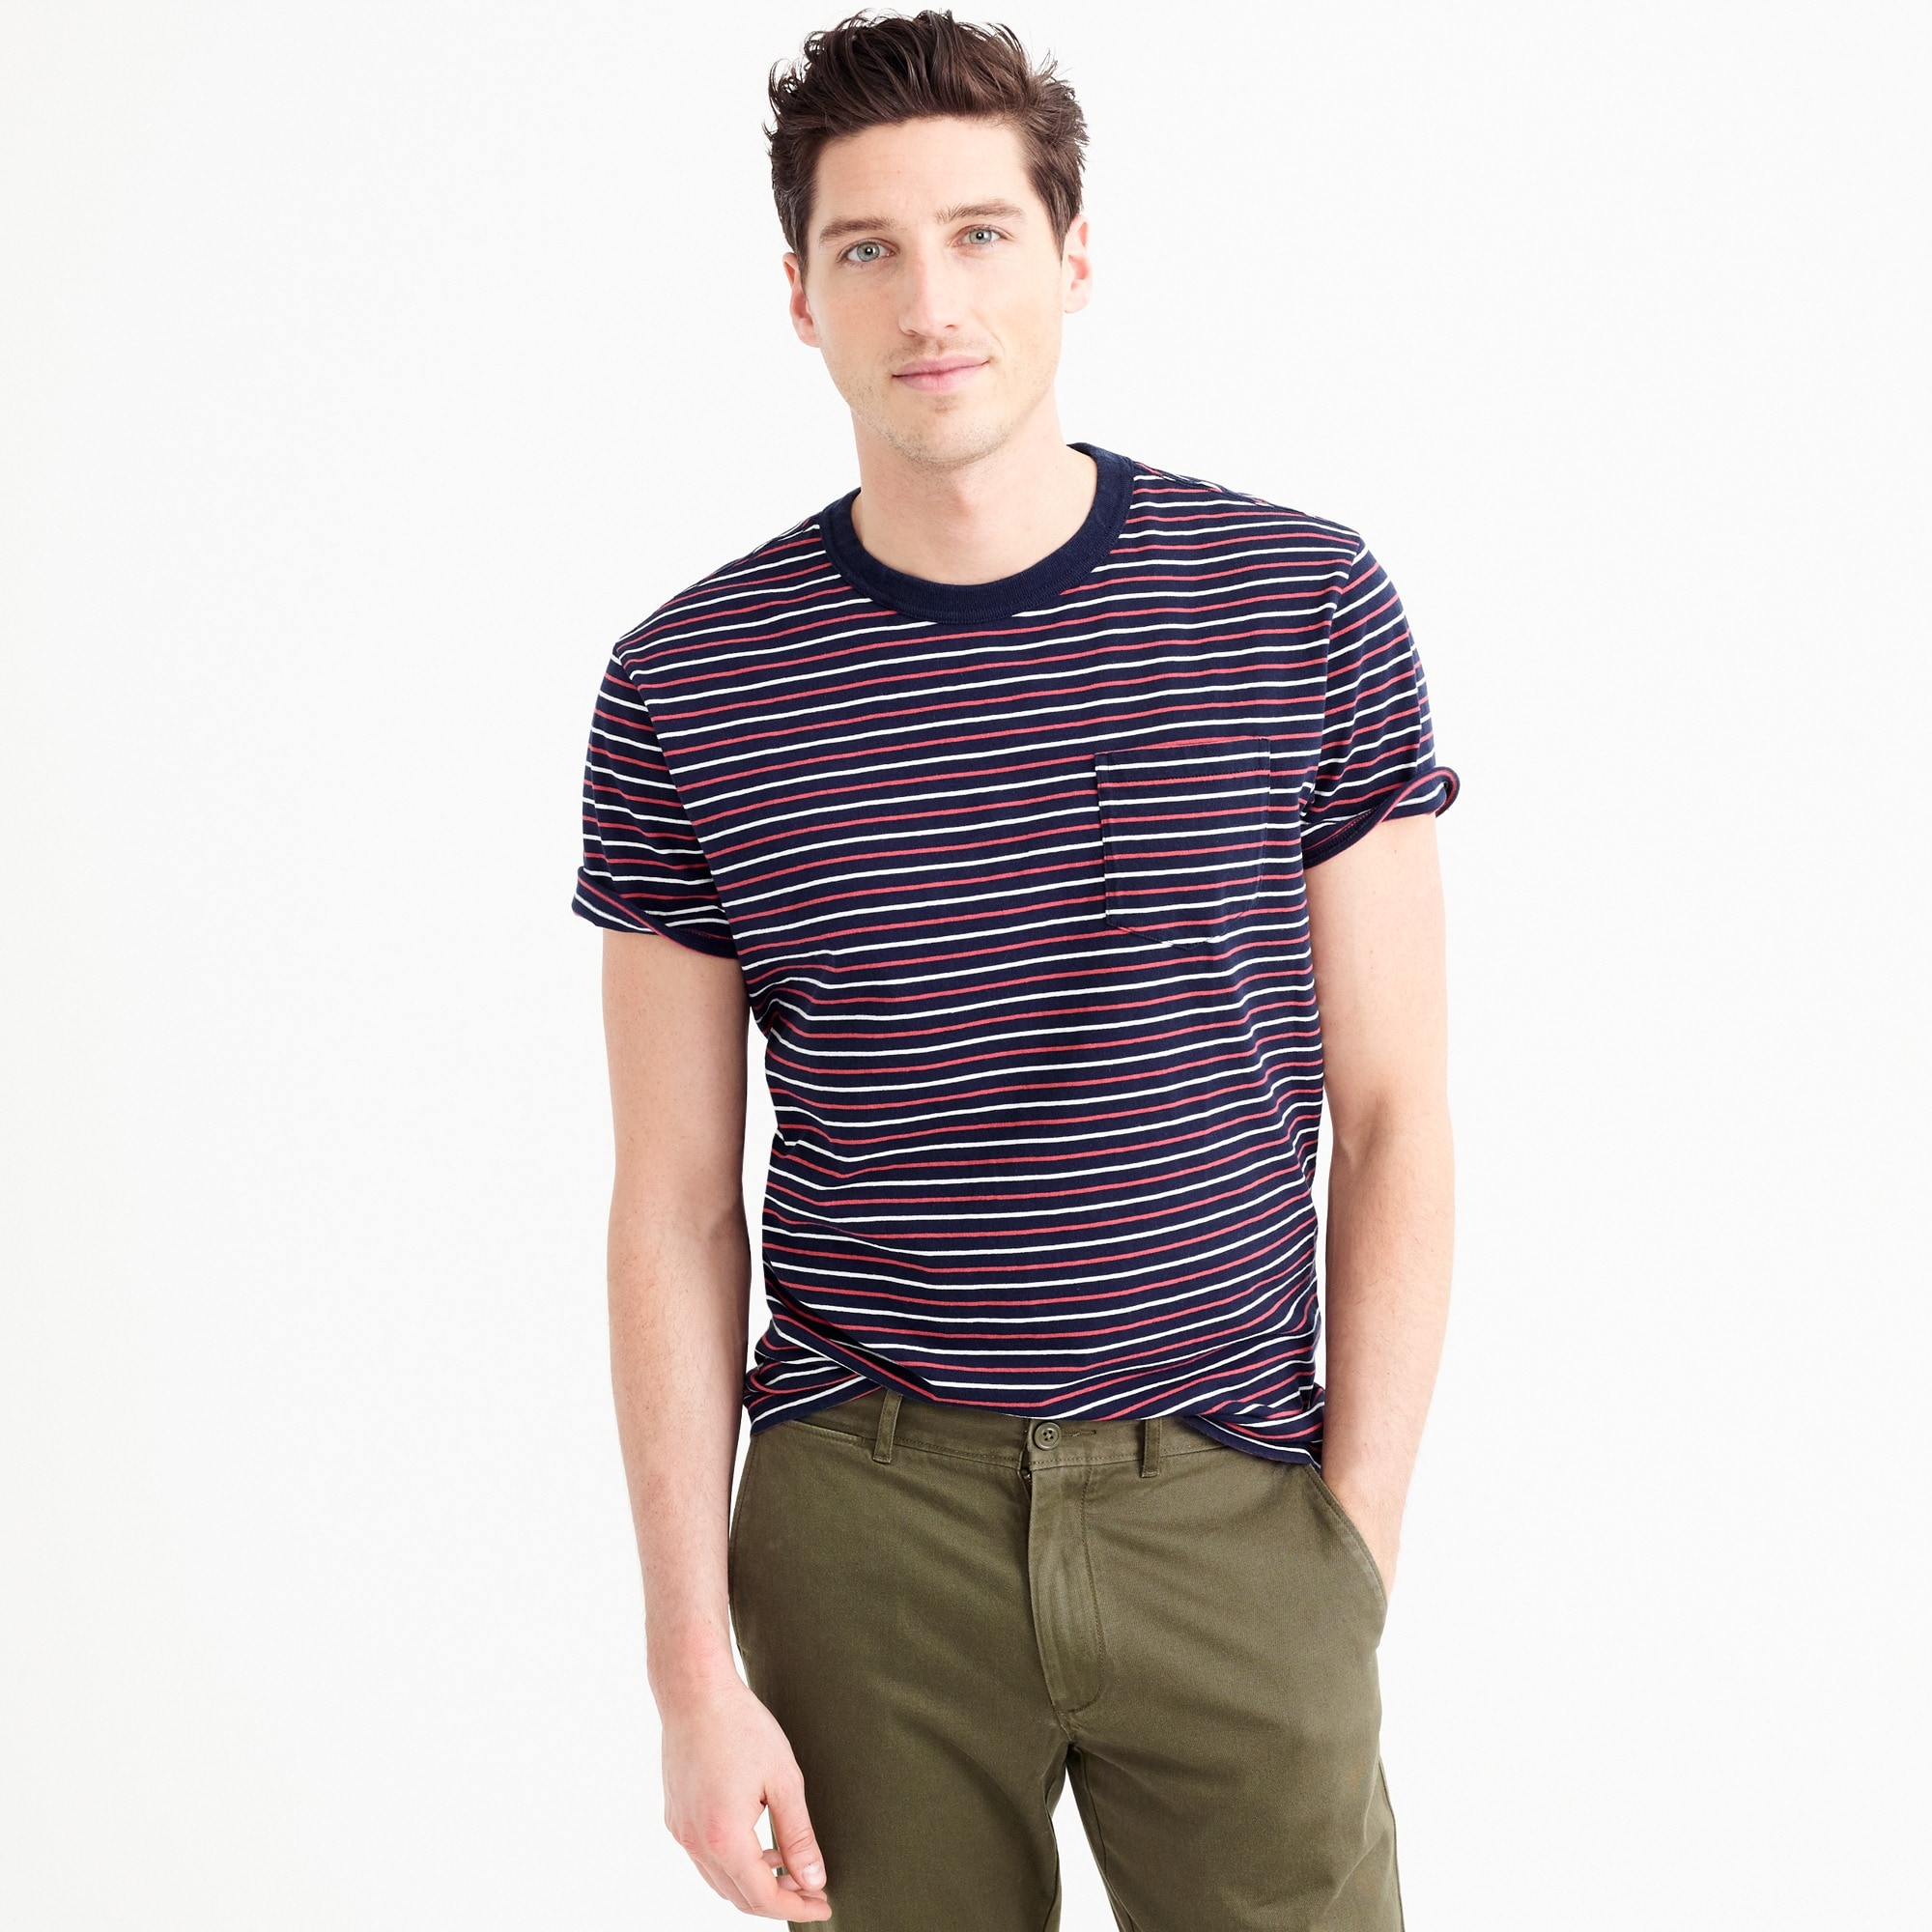 Cotton T-shirt in multistripe